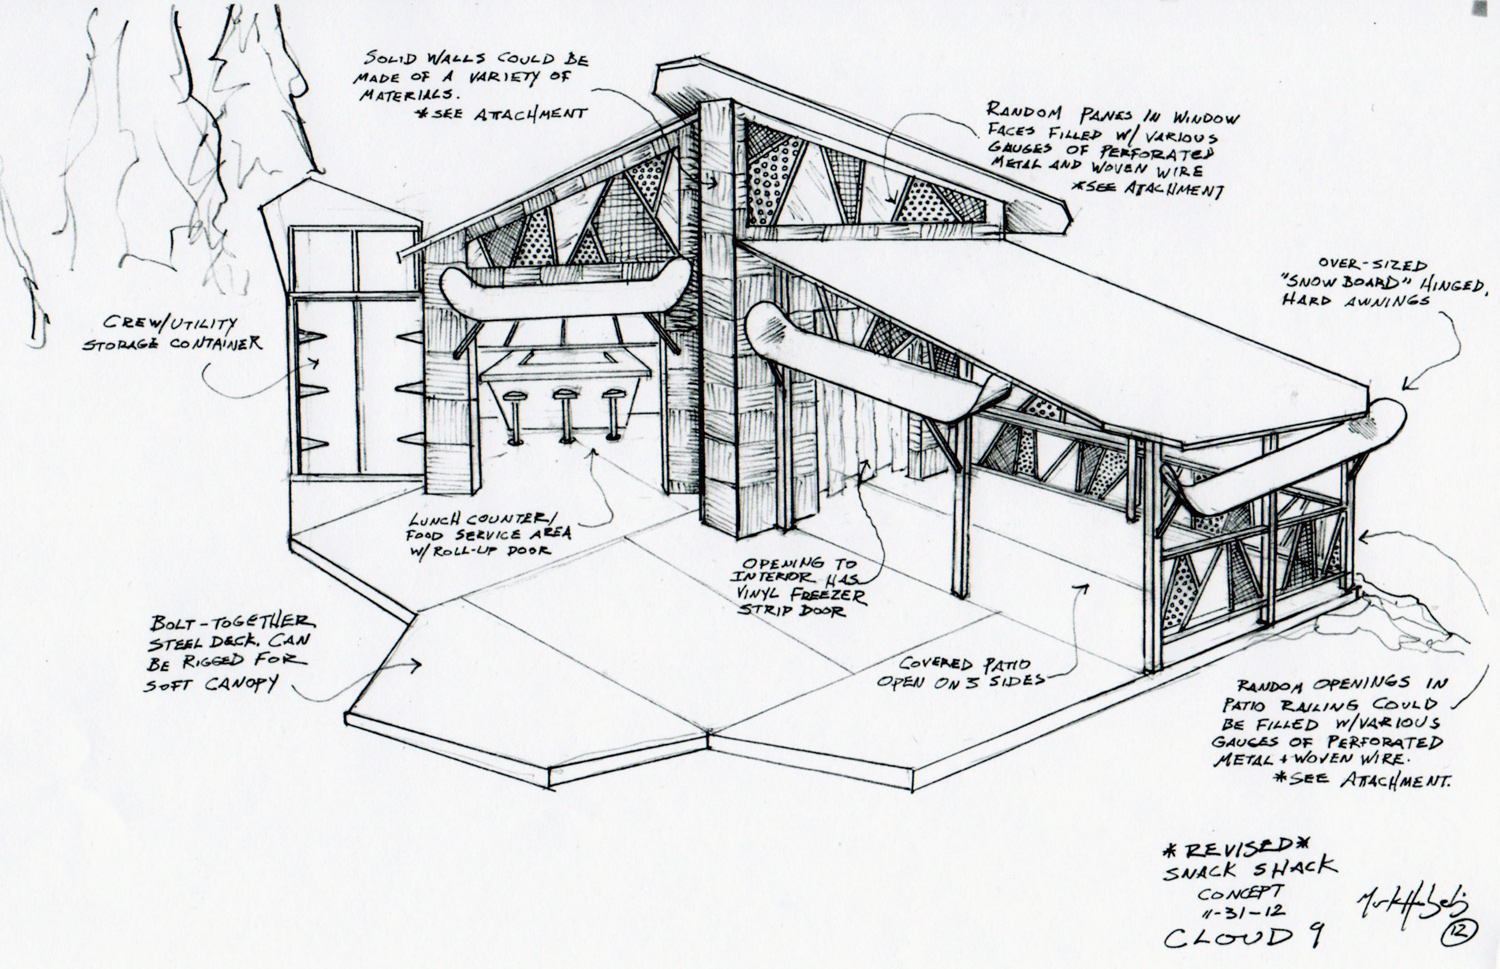 Sketch of the snow boarder's Snack Shack for Cloud 9.